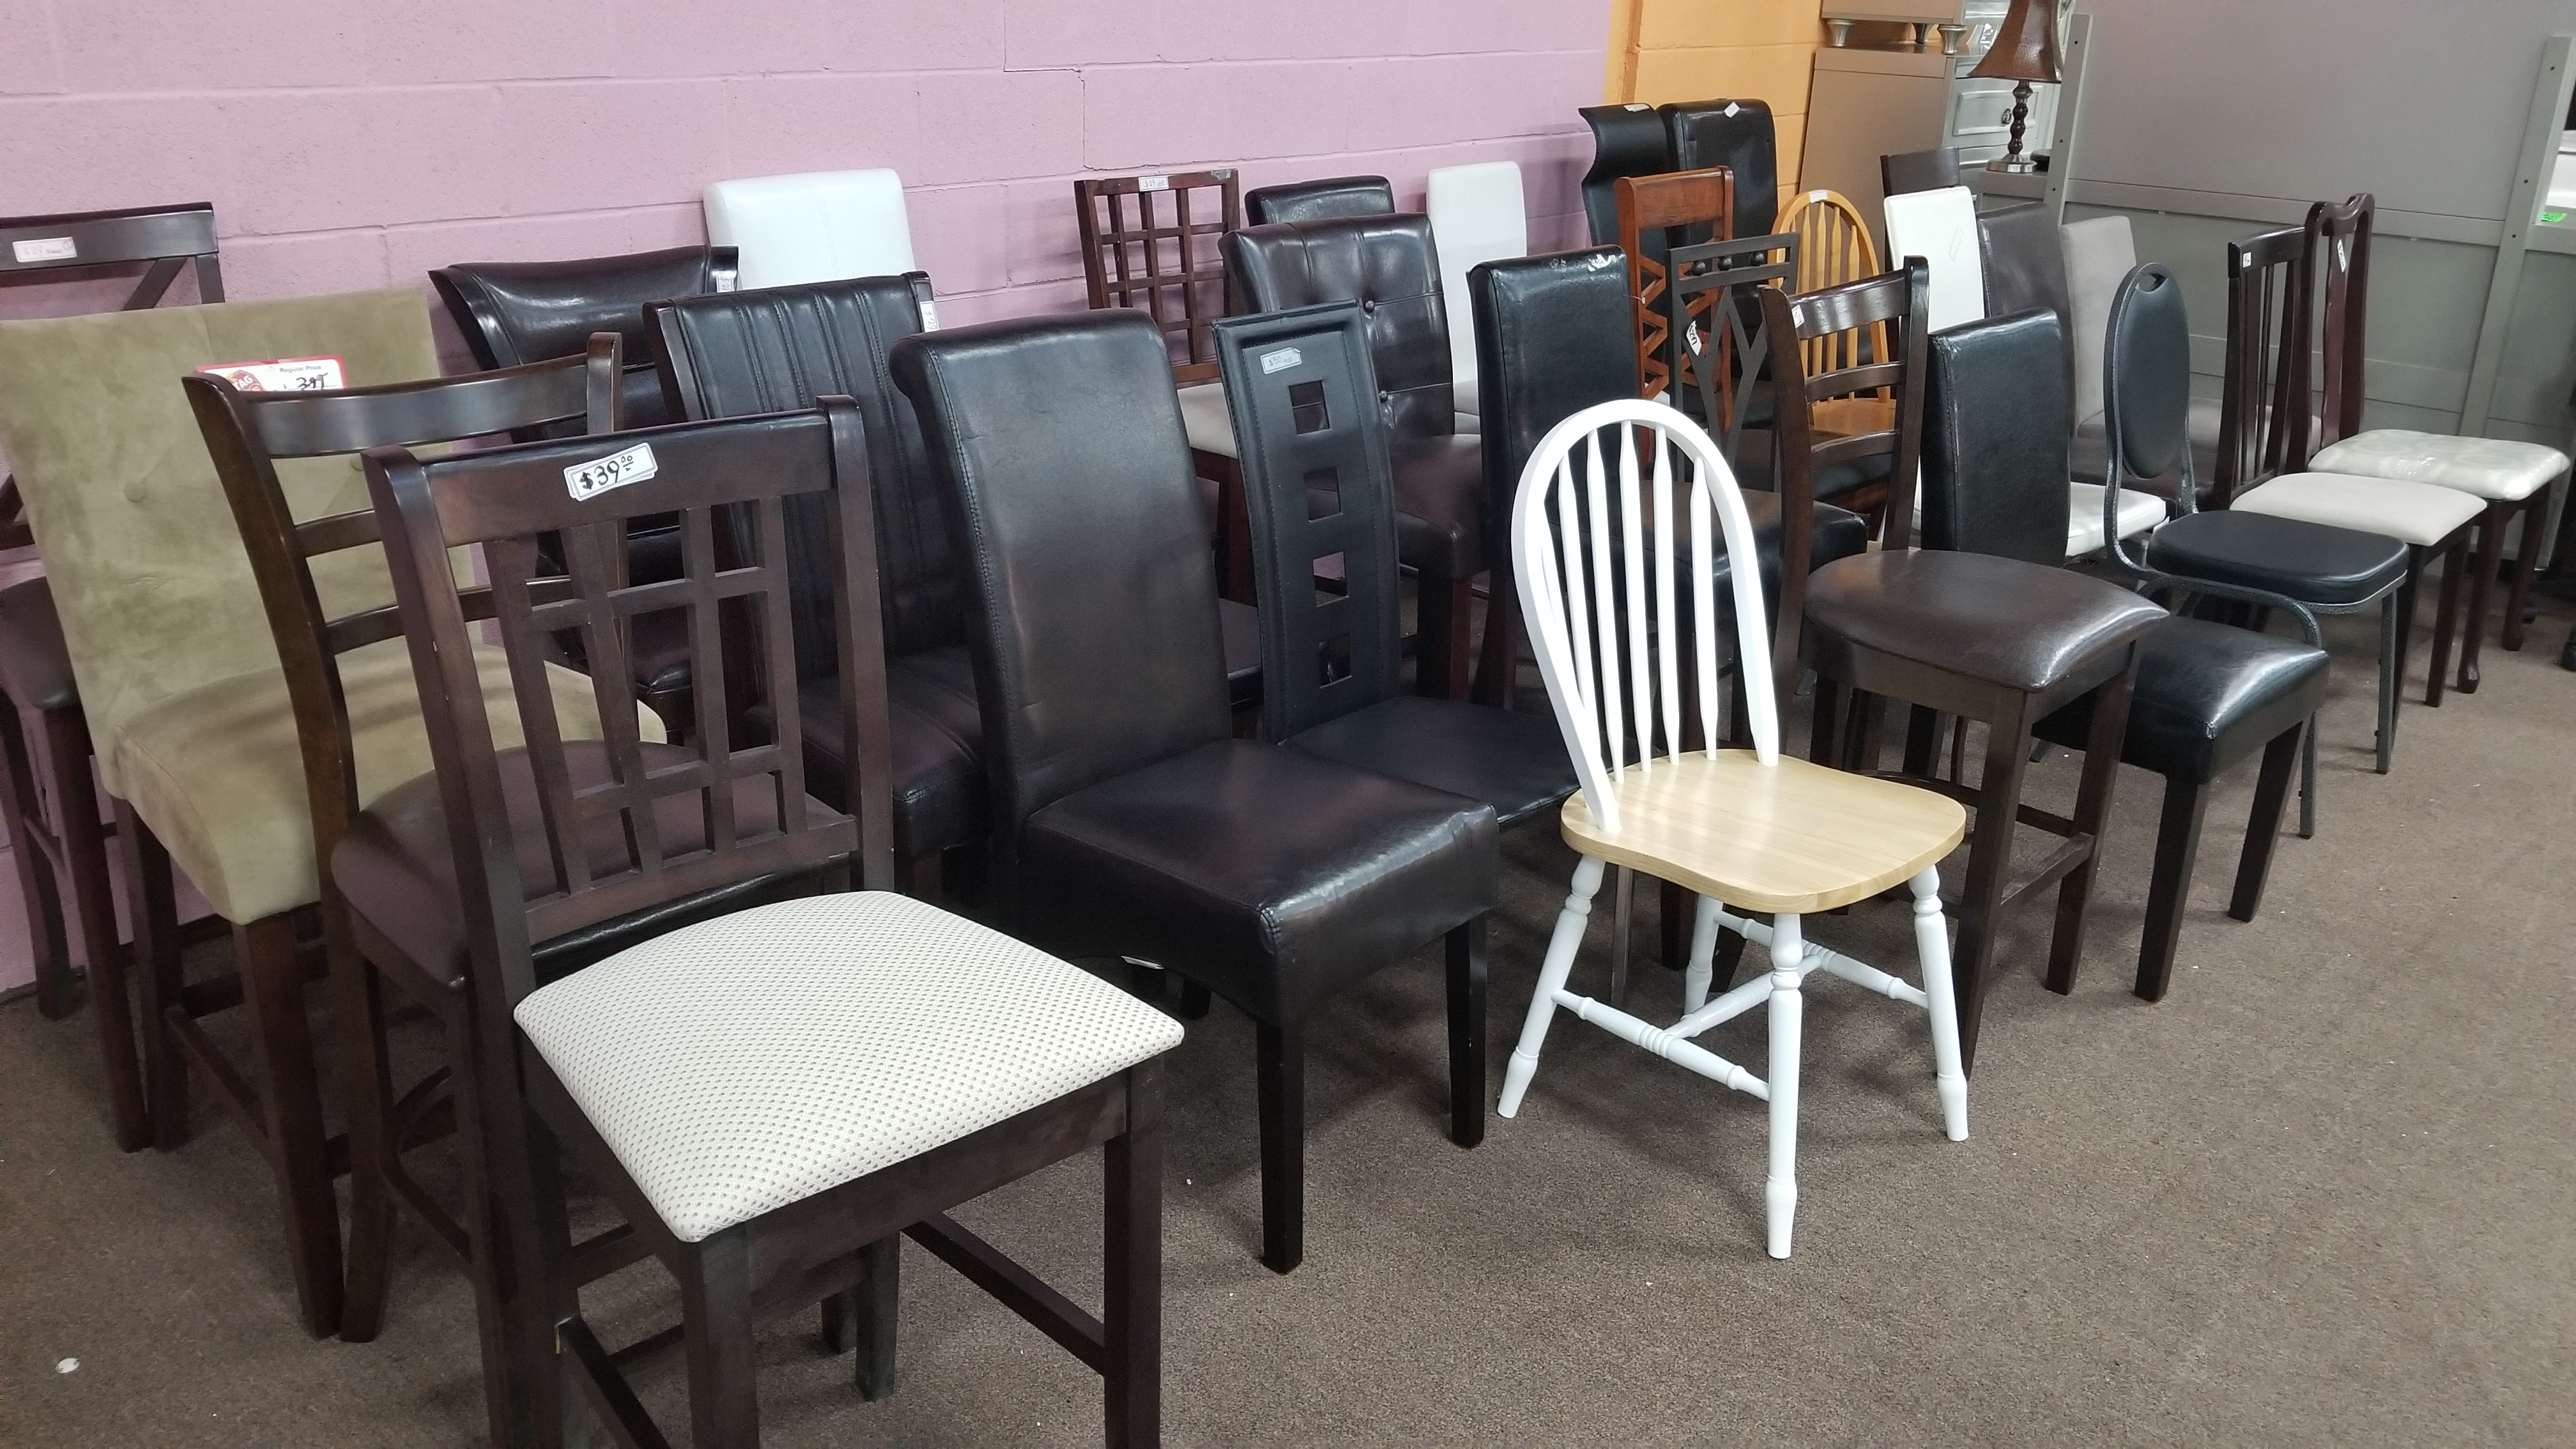 Frre chairs to homeless and refugees